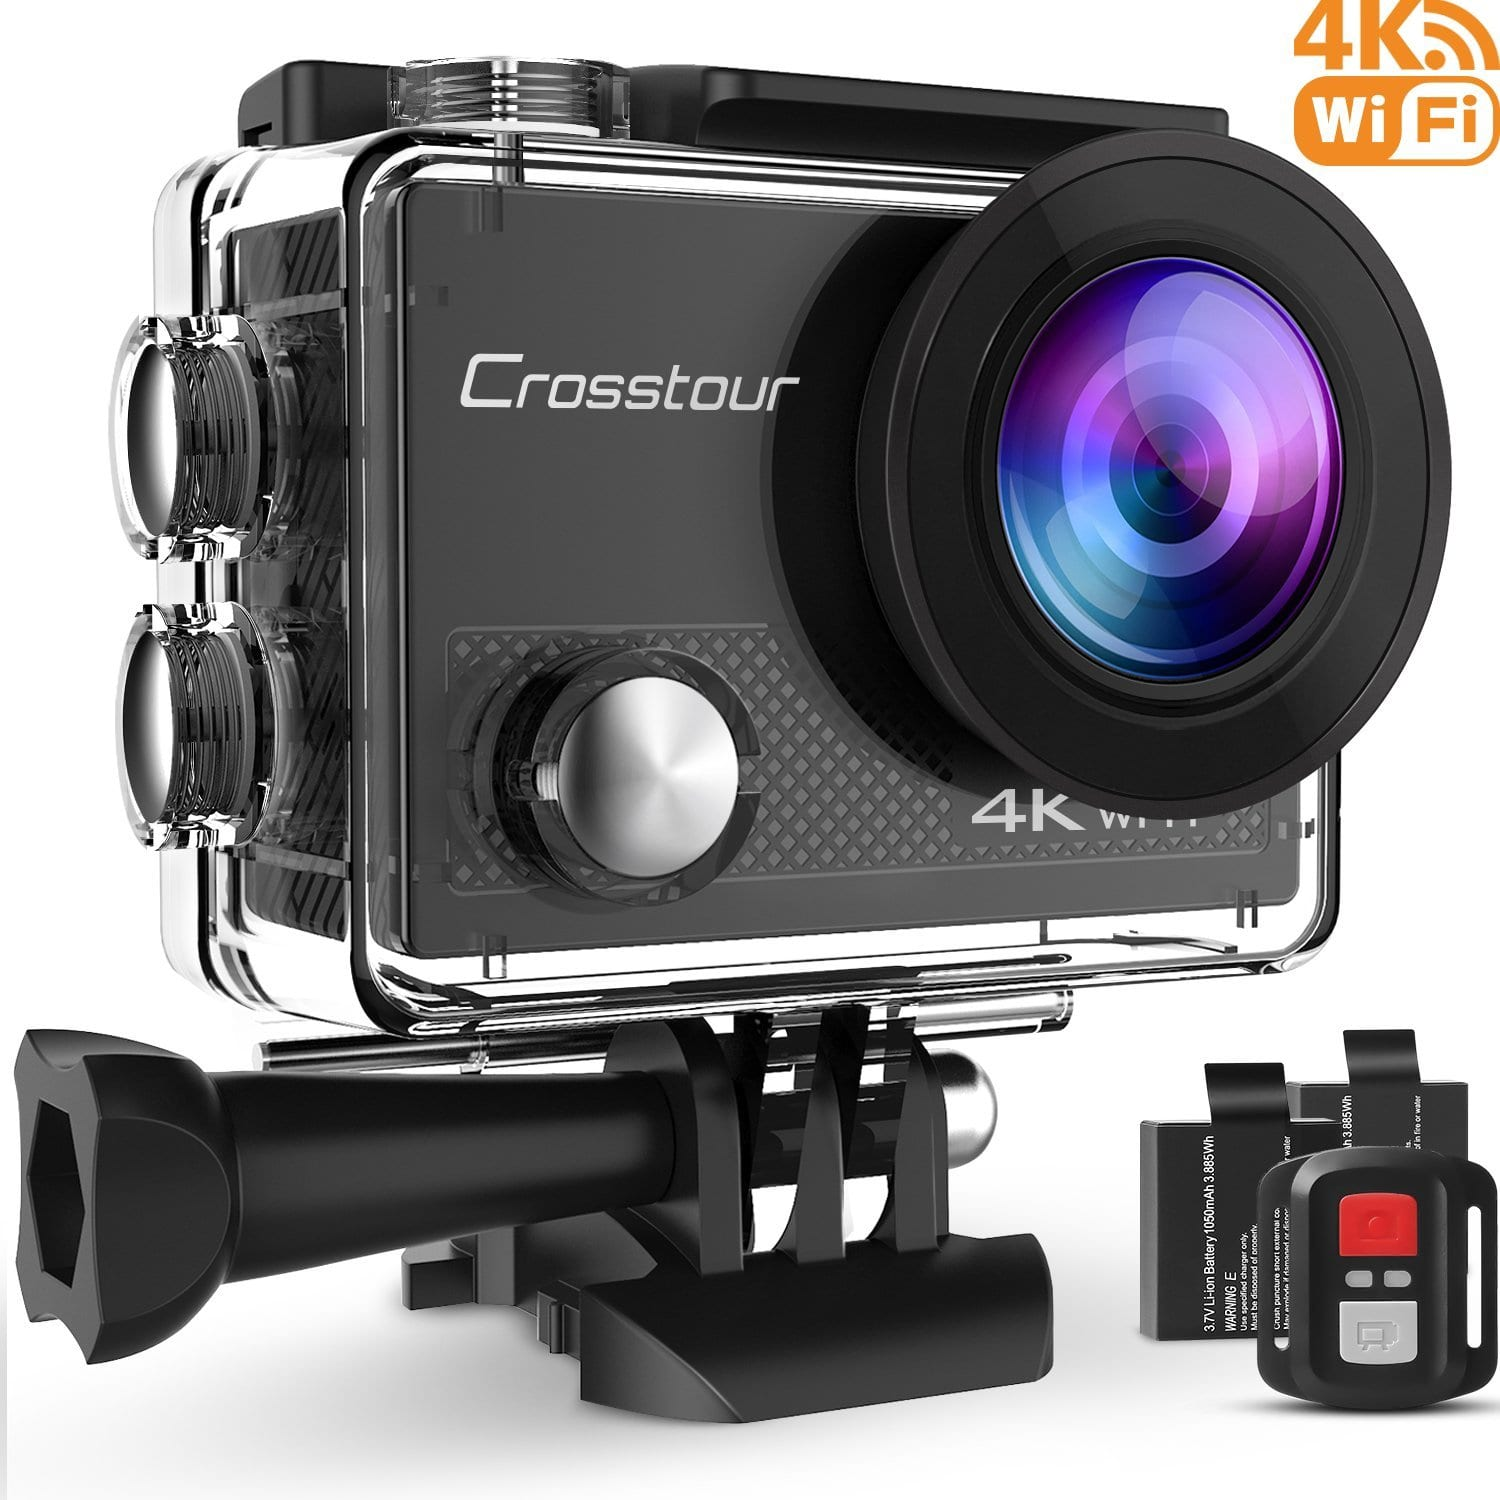 Best Price Tagthat Is Worth Your A It Lets You Shoot This Is Anor Action Camera Comes 2018 Akaso Ek7000 Real Review Akaso Ek7000 4k Wifi Sports Review Action Cameras Reviews dpreview Akaso Ek7000 Review